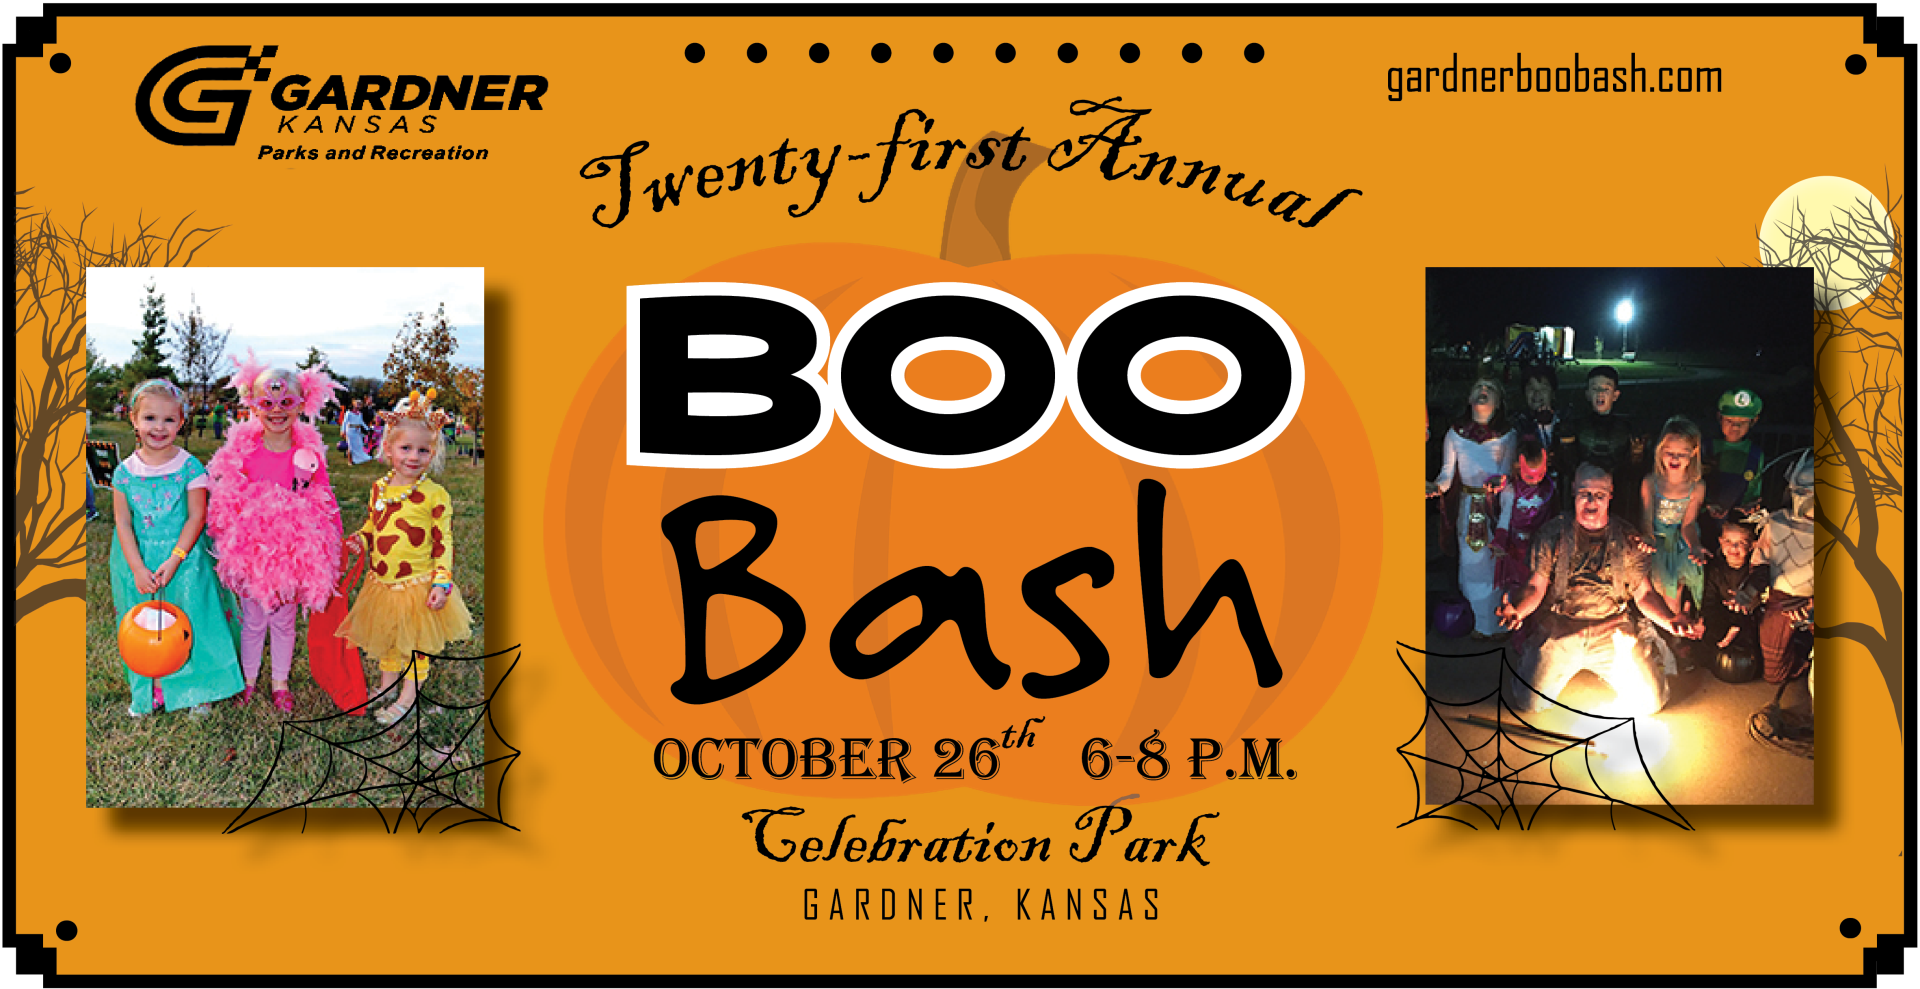 Boo Bash Artwork for FB event page cropped 4